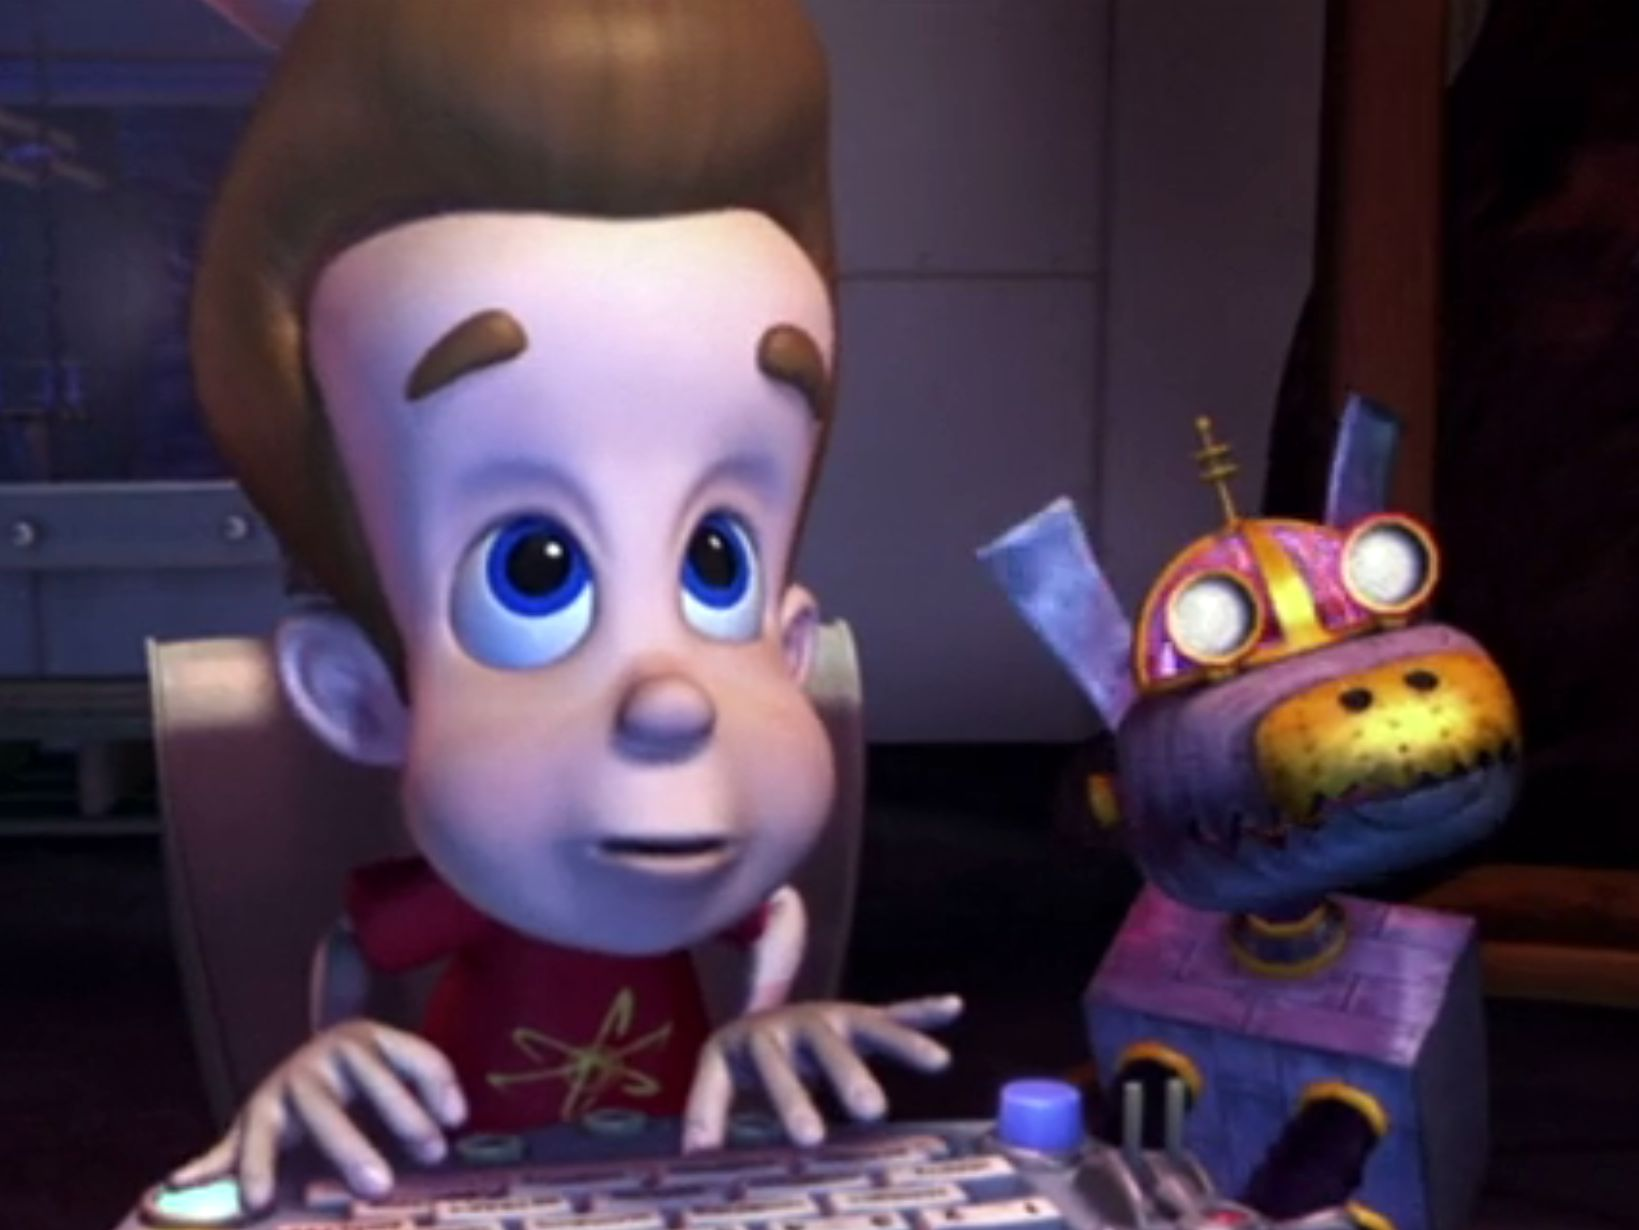 How Jimmy Neutron Went From A Childhood Nickname To A Major